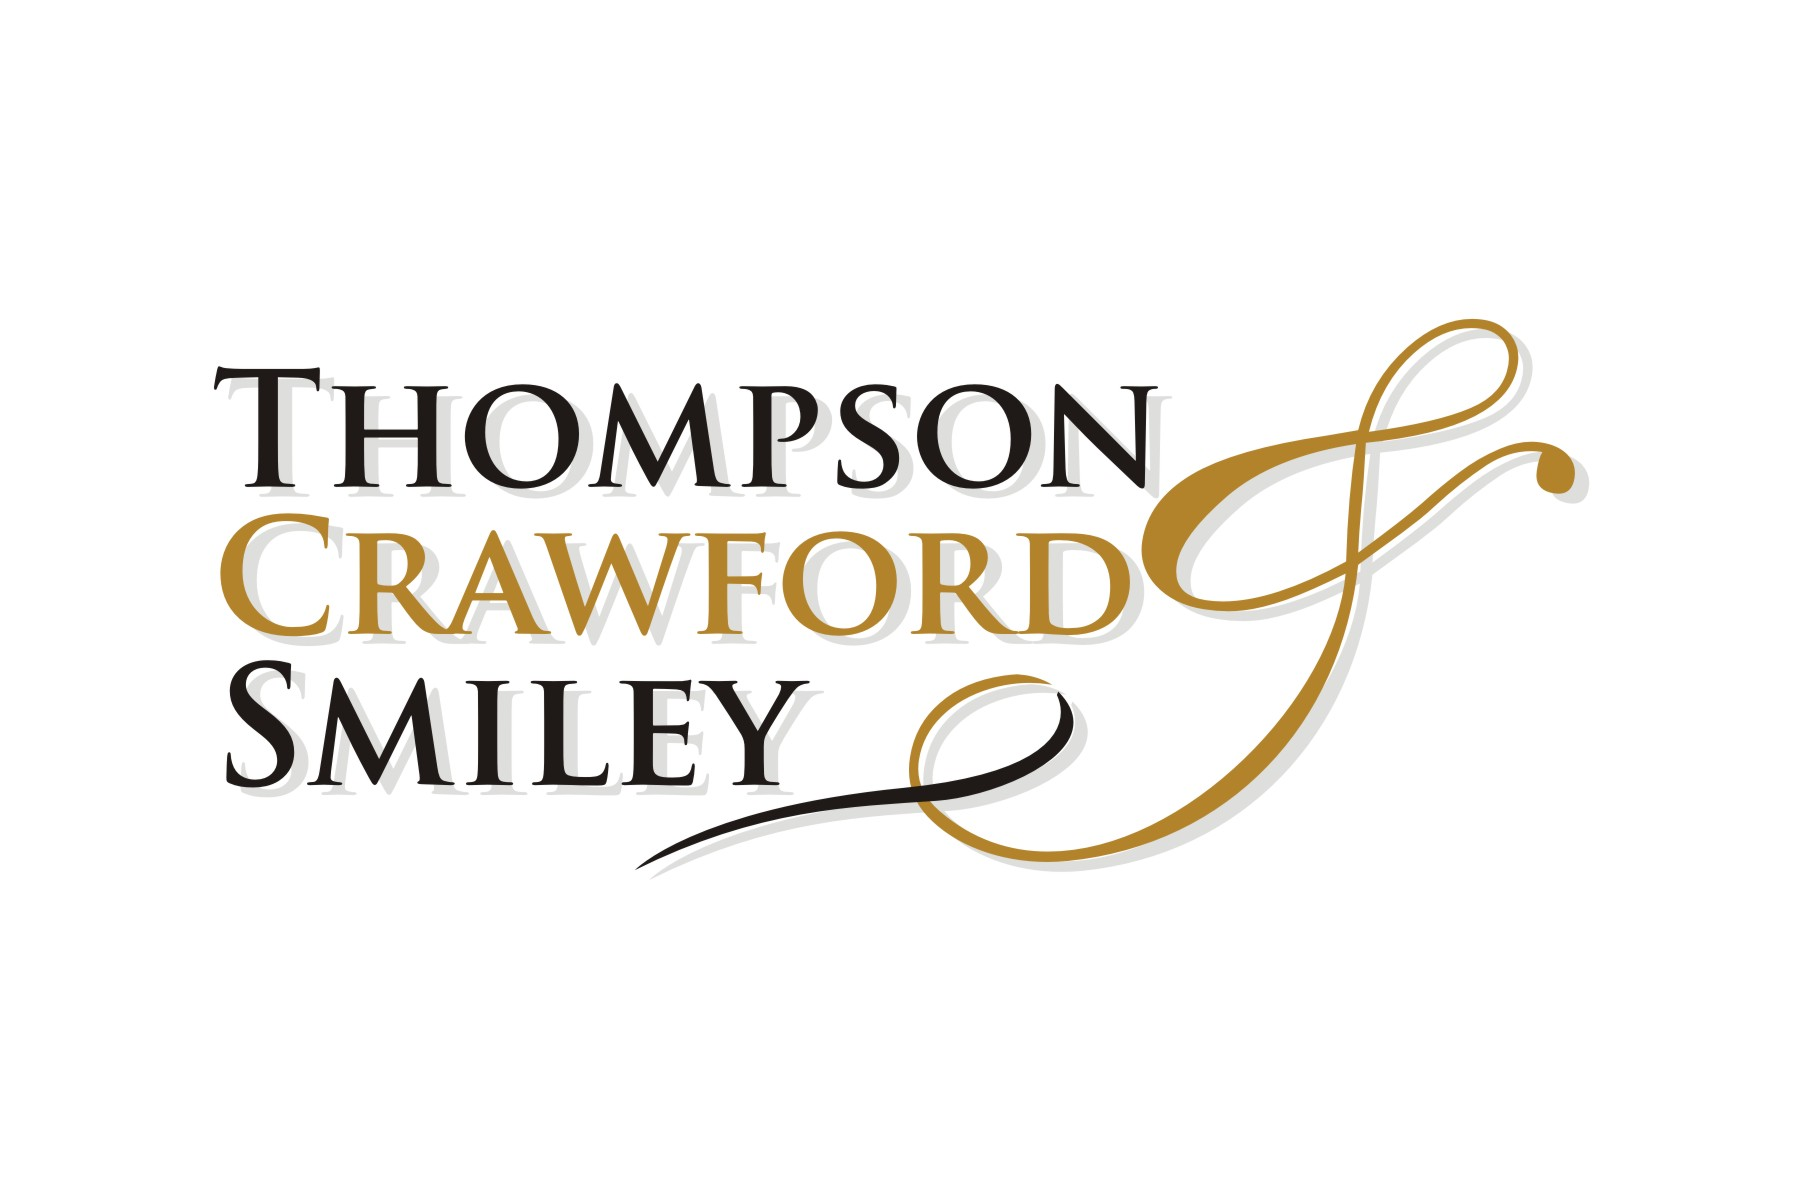 Thompson, Crawford, and Smiley Logo